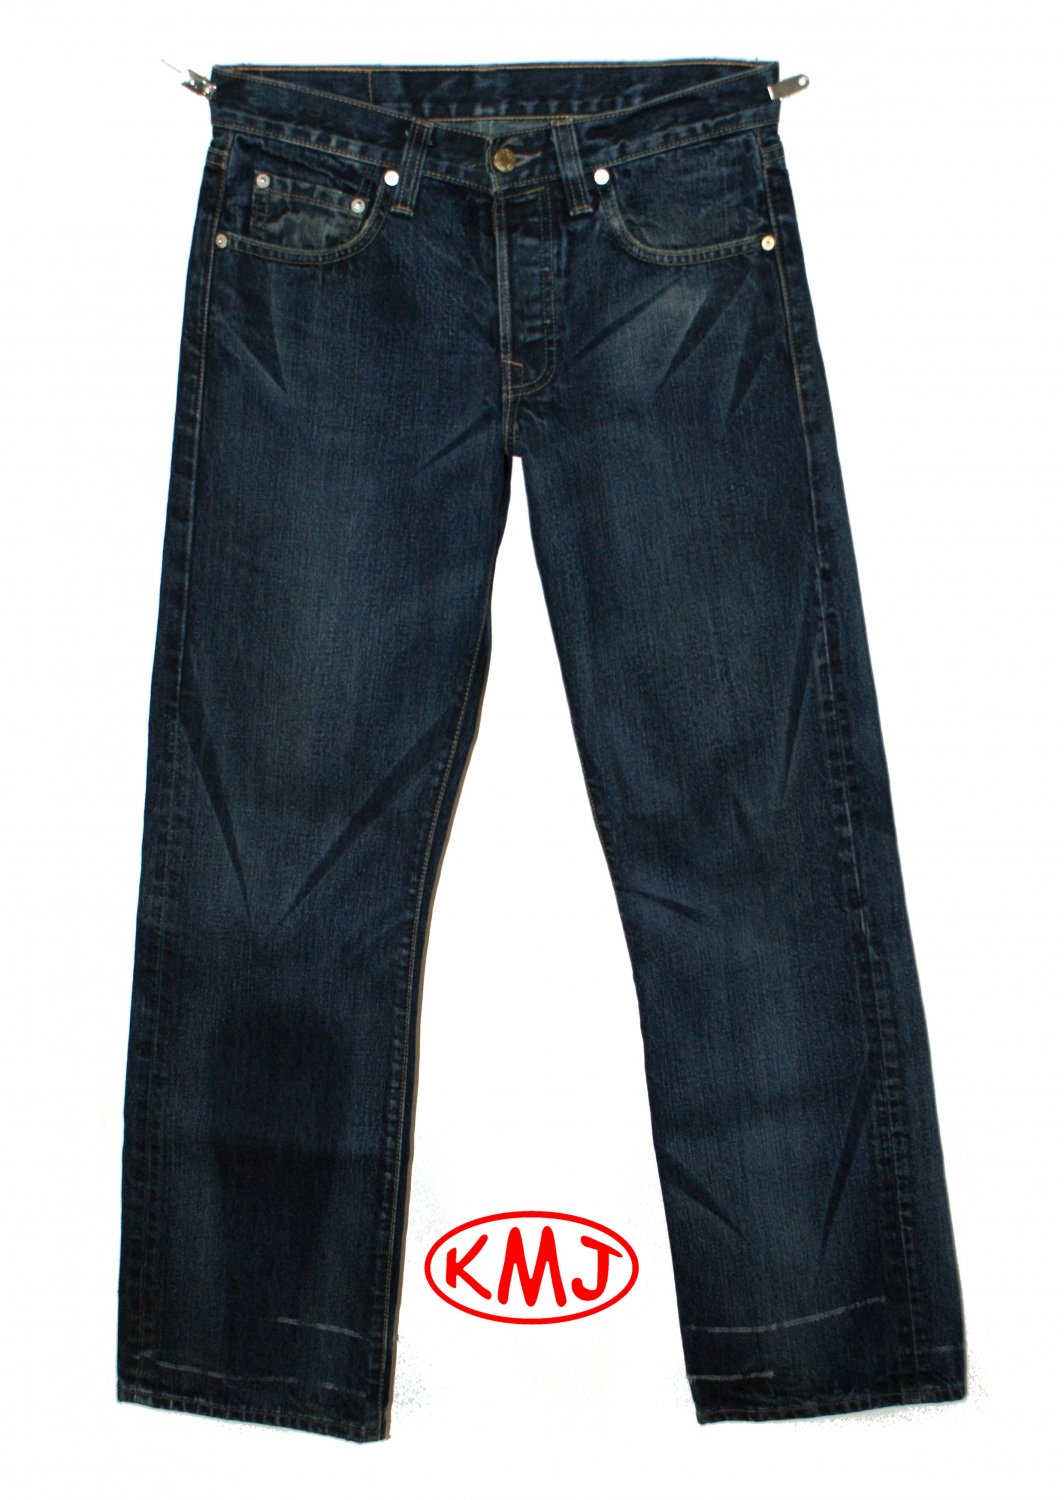 LEVI'S PREMIUM HESHER CAT SCRATCH BUTTON-FLY DENIM JEANS MADE IN USA W30 L30 (Actual size 30 31)